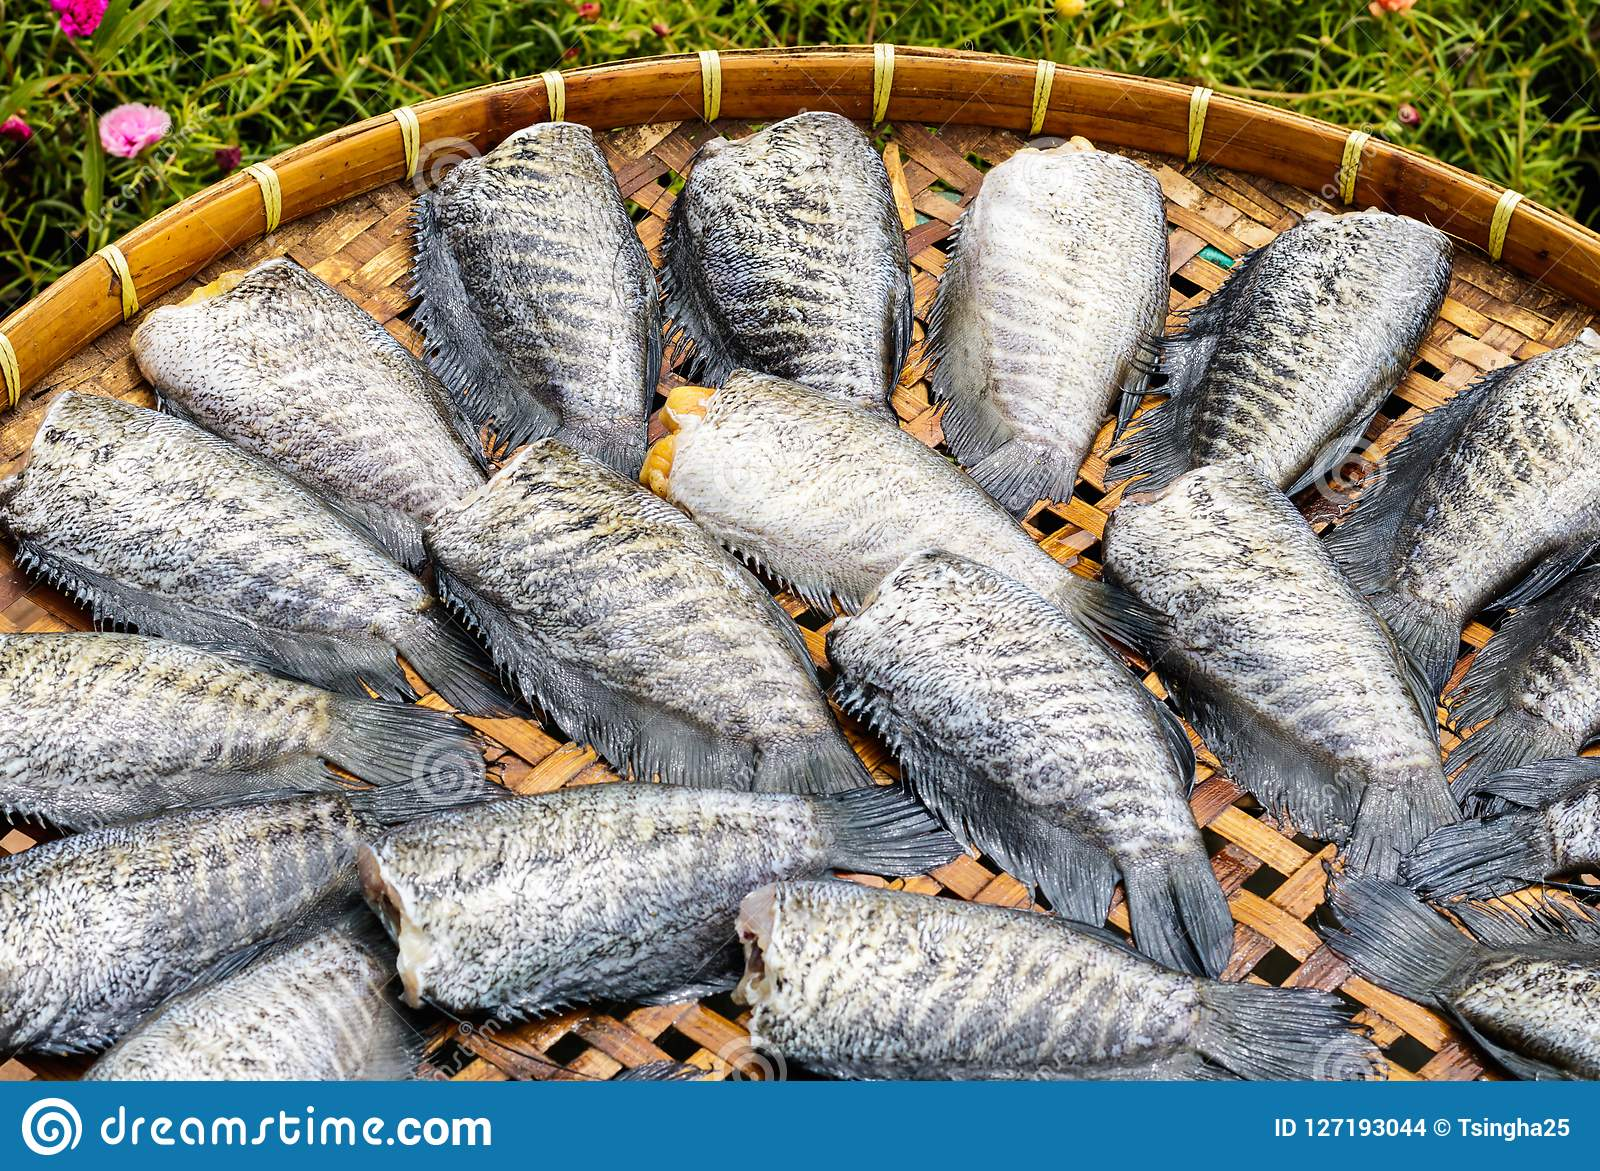 Dried fish on bamboo basket.